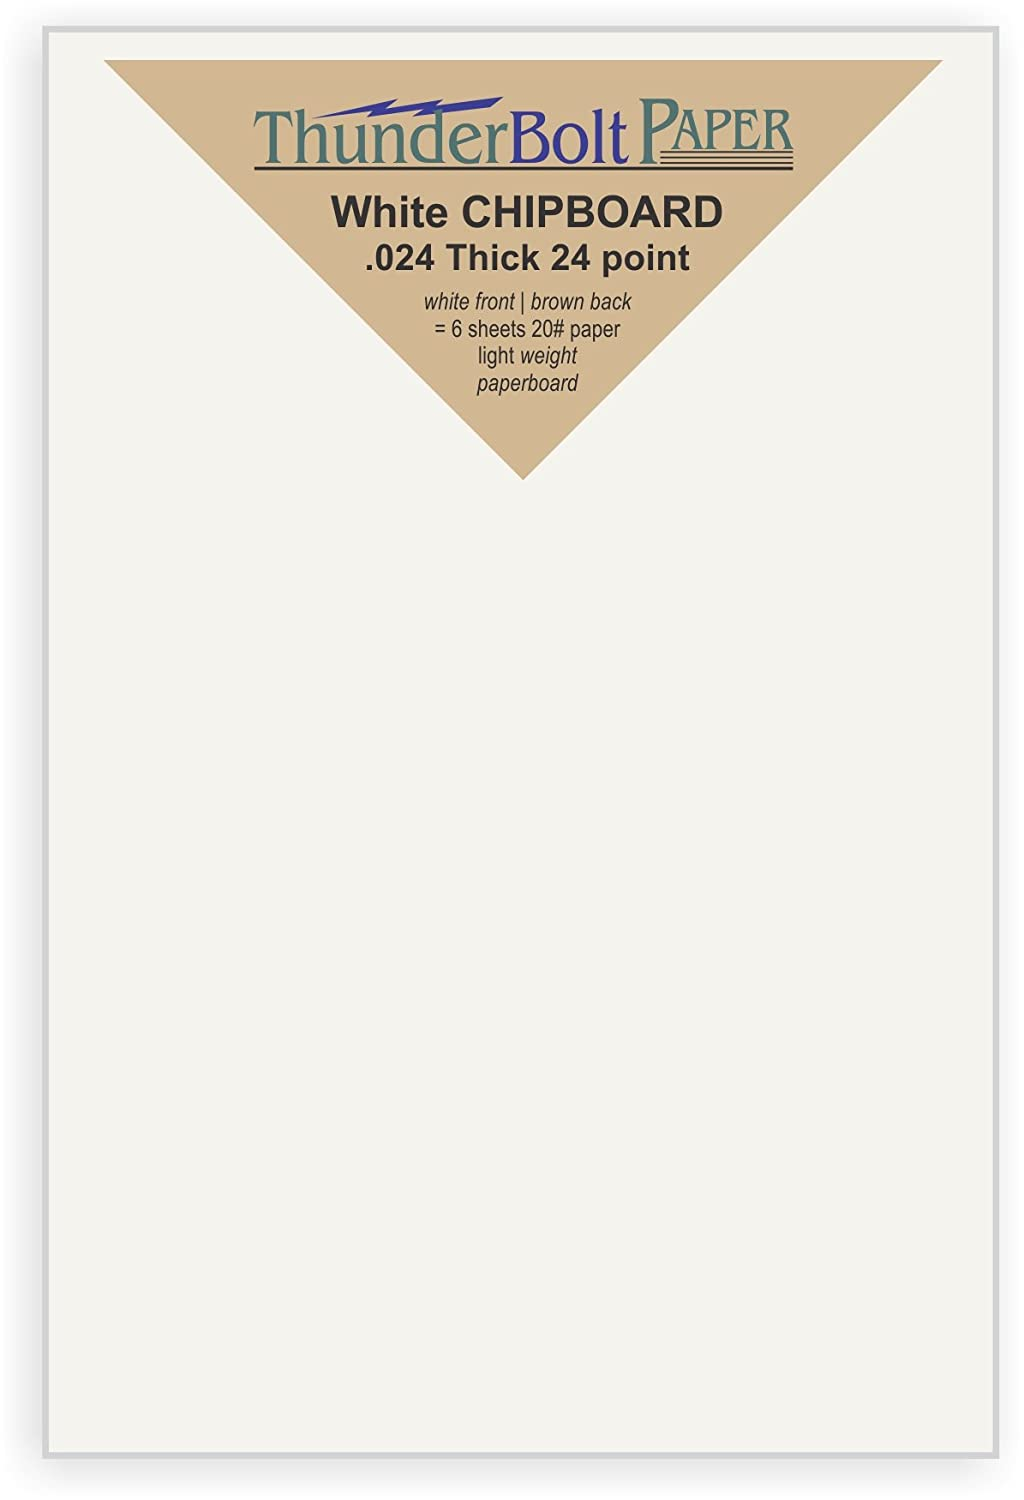 50 Sheets Chipboard 24pt white 1 side - 3 X 5 (3X5 Inches) Photo|Card|Frame Size - Light Medium Weight Thickness .024 (point) Caliper White Coated Cardboard Paper Craft|Packaging PaperBoard TBP